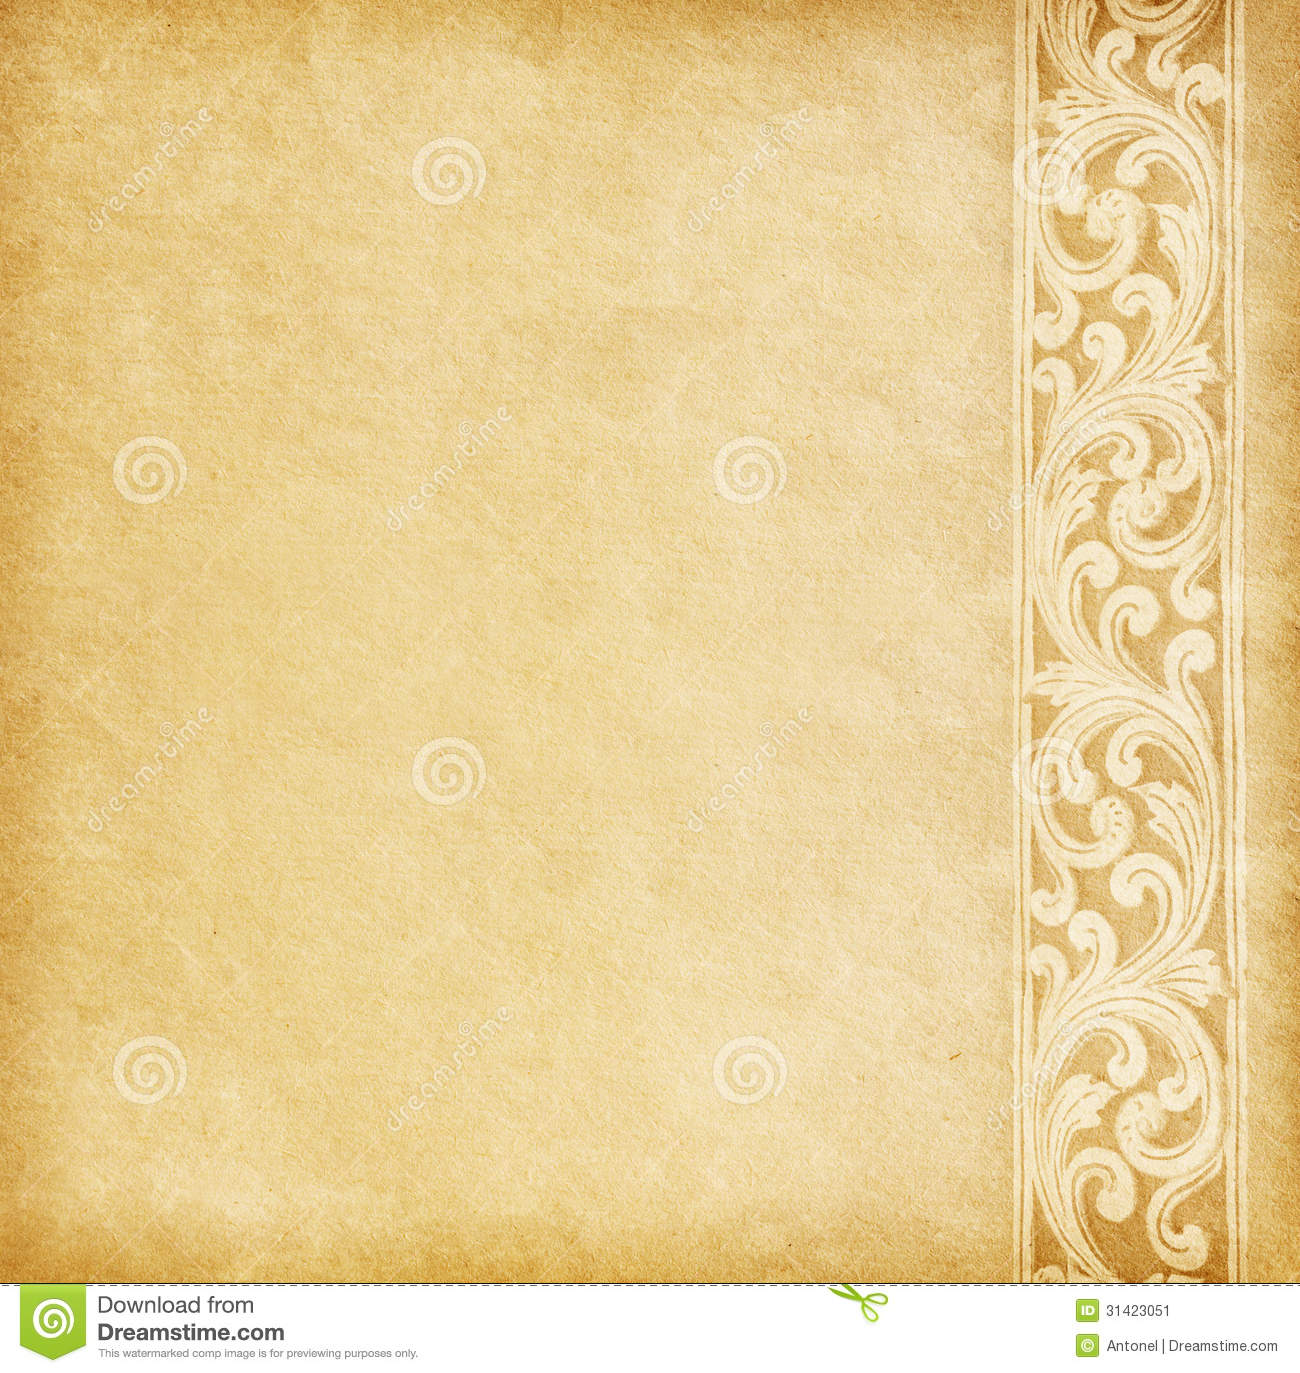 Old Paper With Floral Border. Stock Image - Image: 31423051